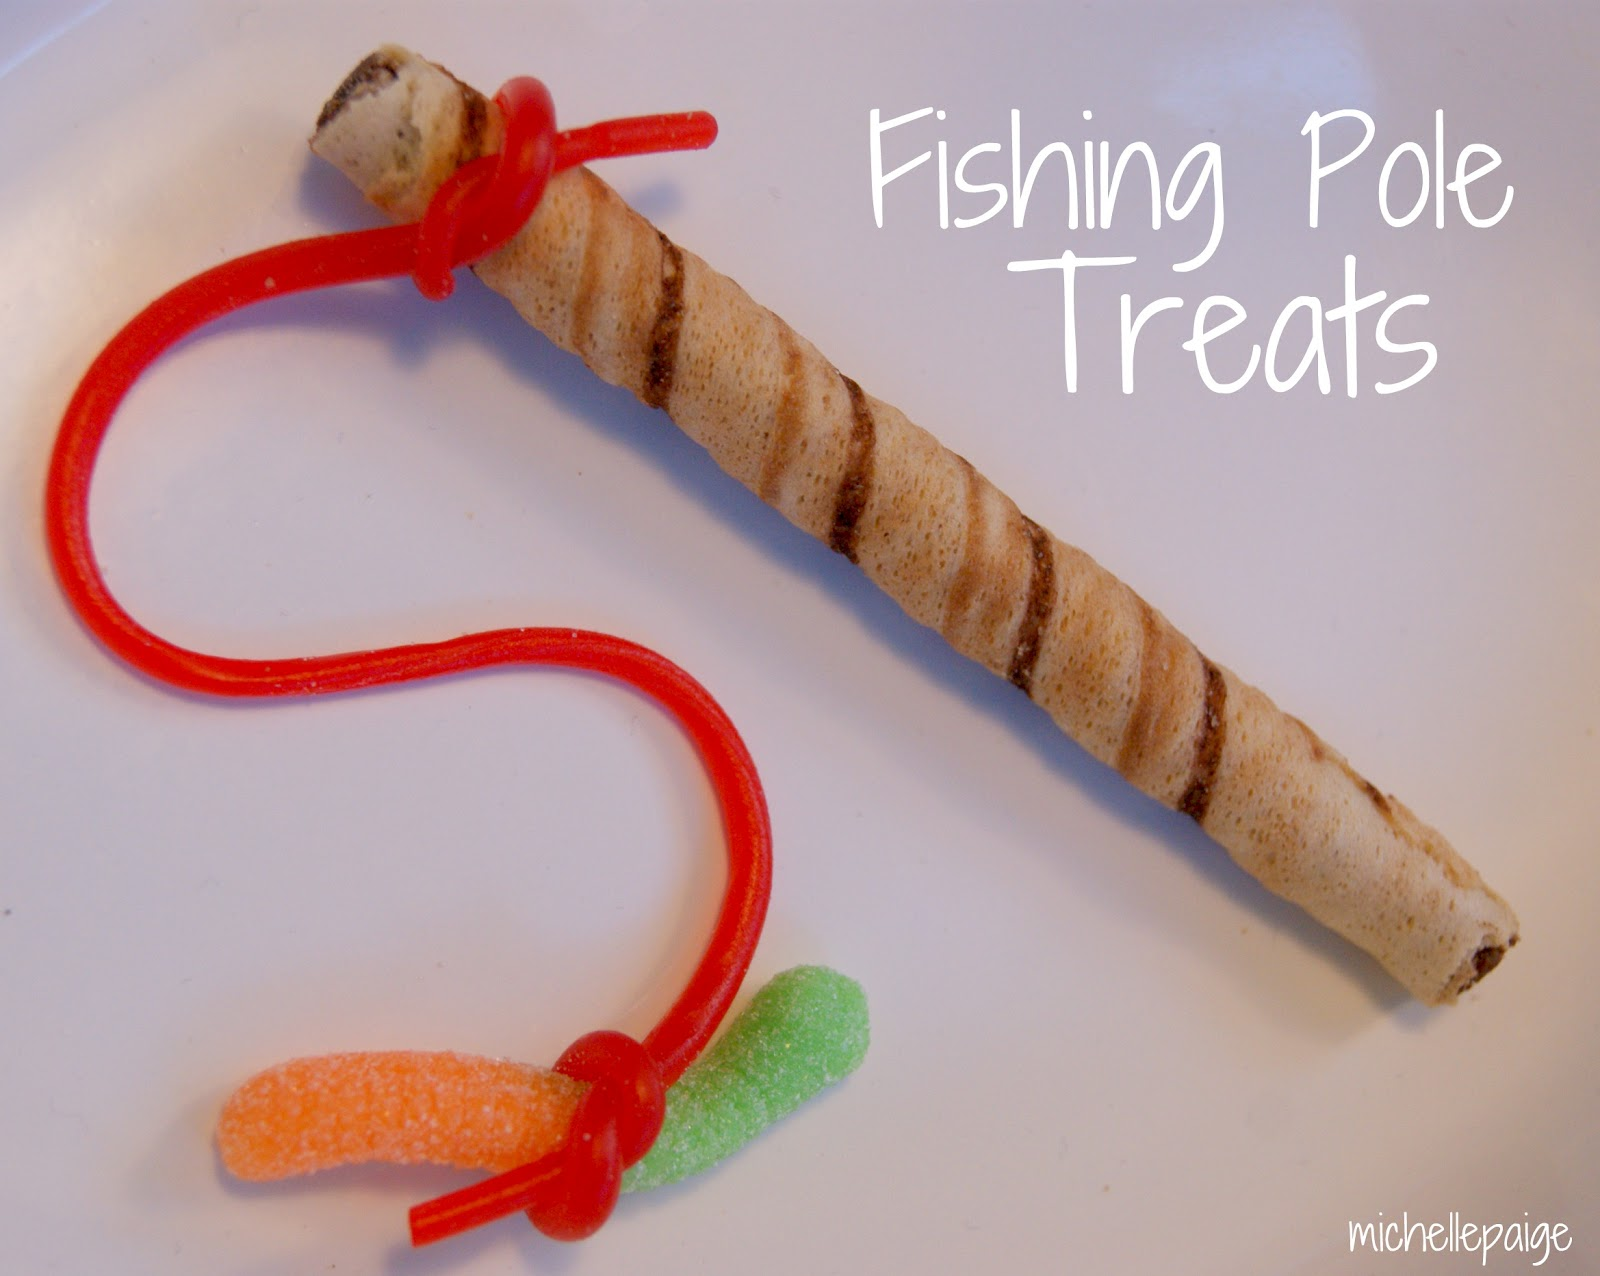 Michelle paige blogs father 39 s day fishing party for Target fishing pole